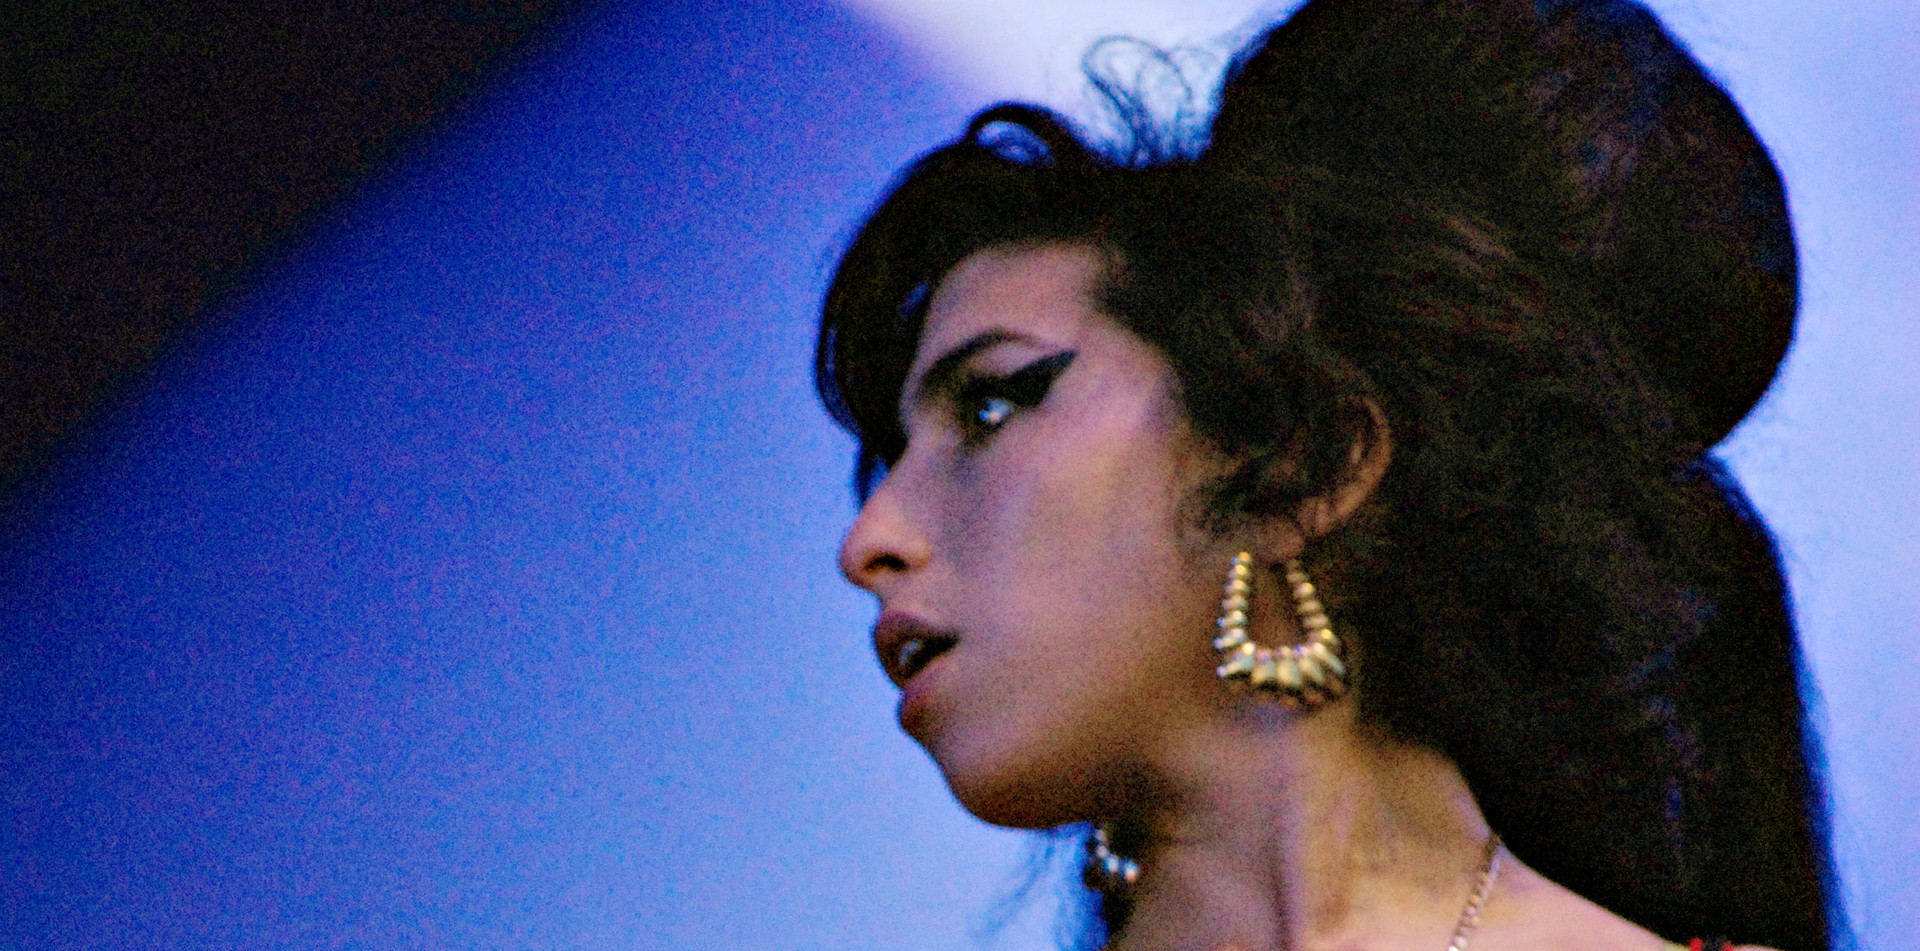 The late Amy Winehouse at Glastonbury Festival